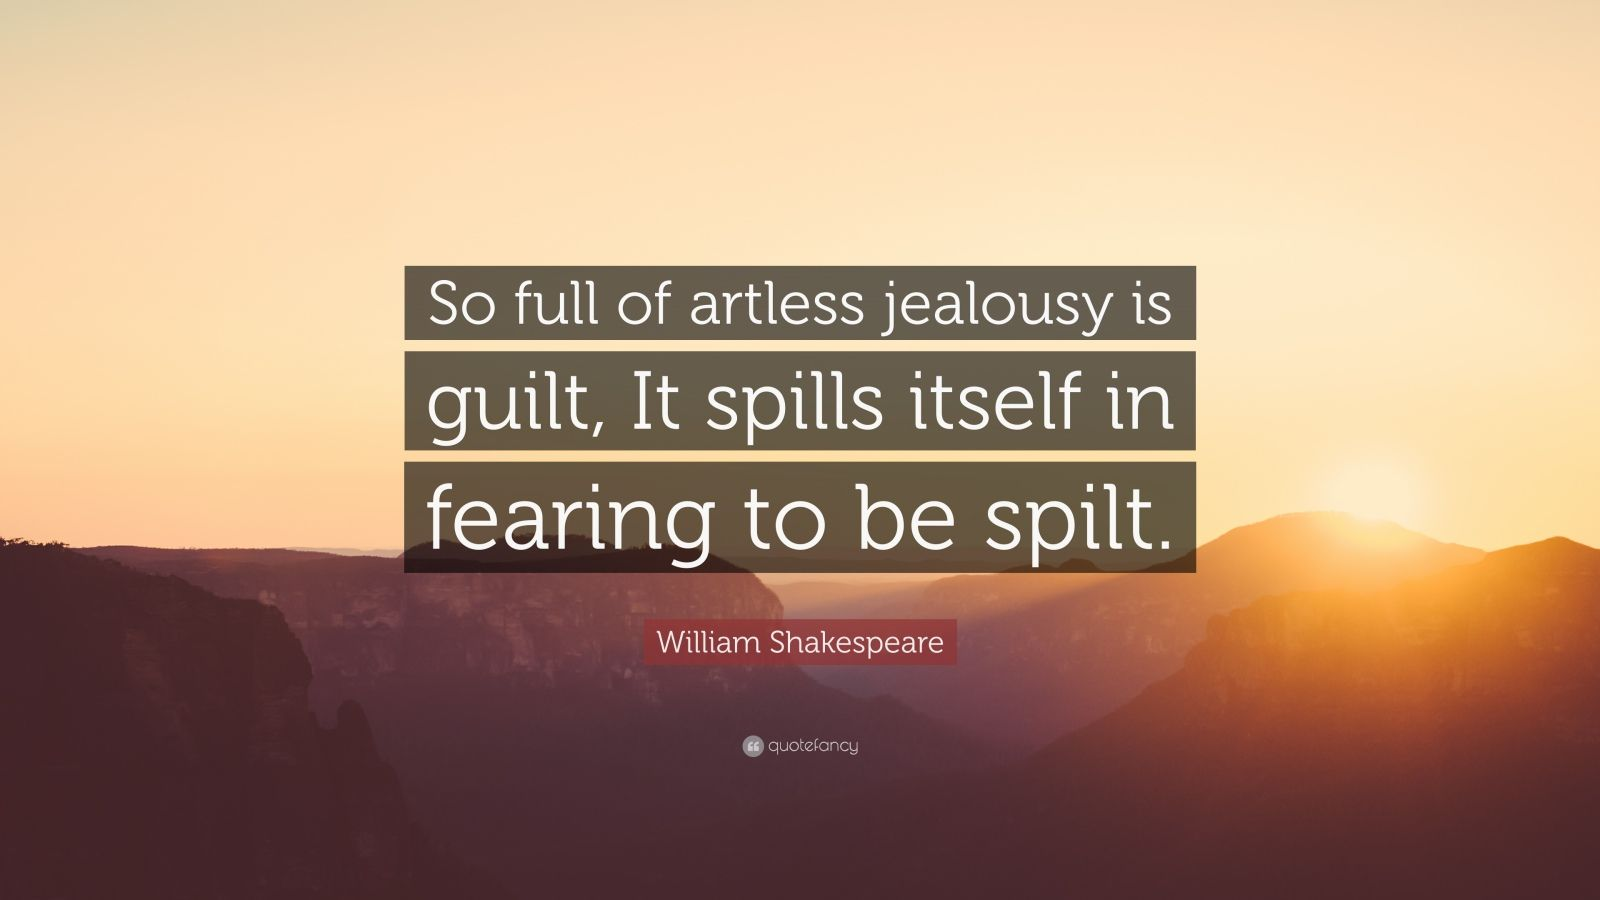 William Shakespeare Love Quotes Wallpaper William Shakespeare Quote So Full Of Artless Jealousy Is